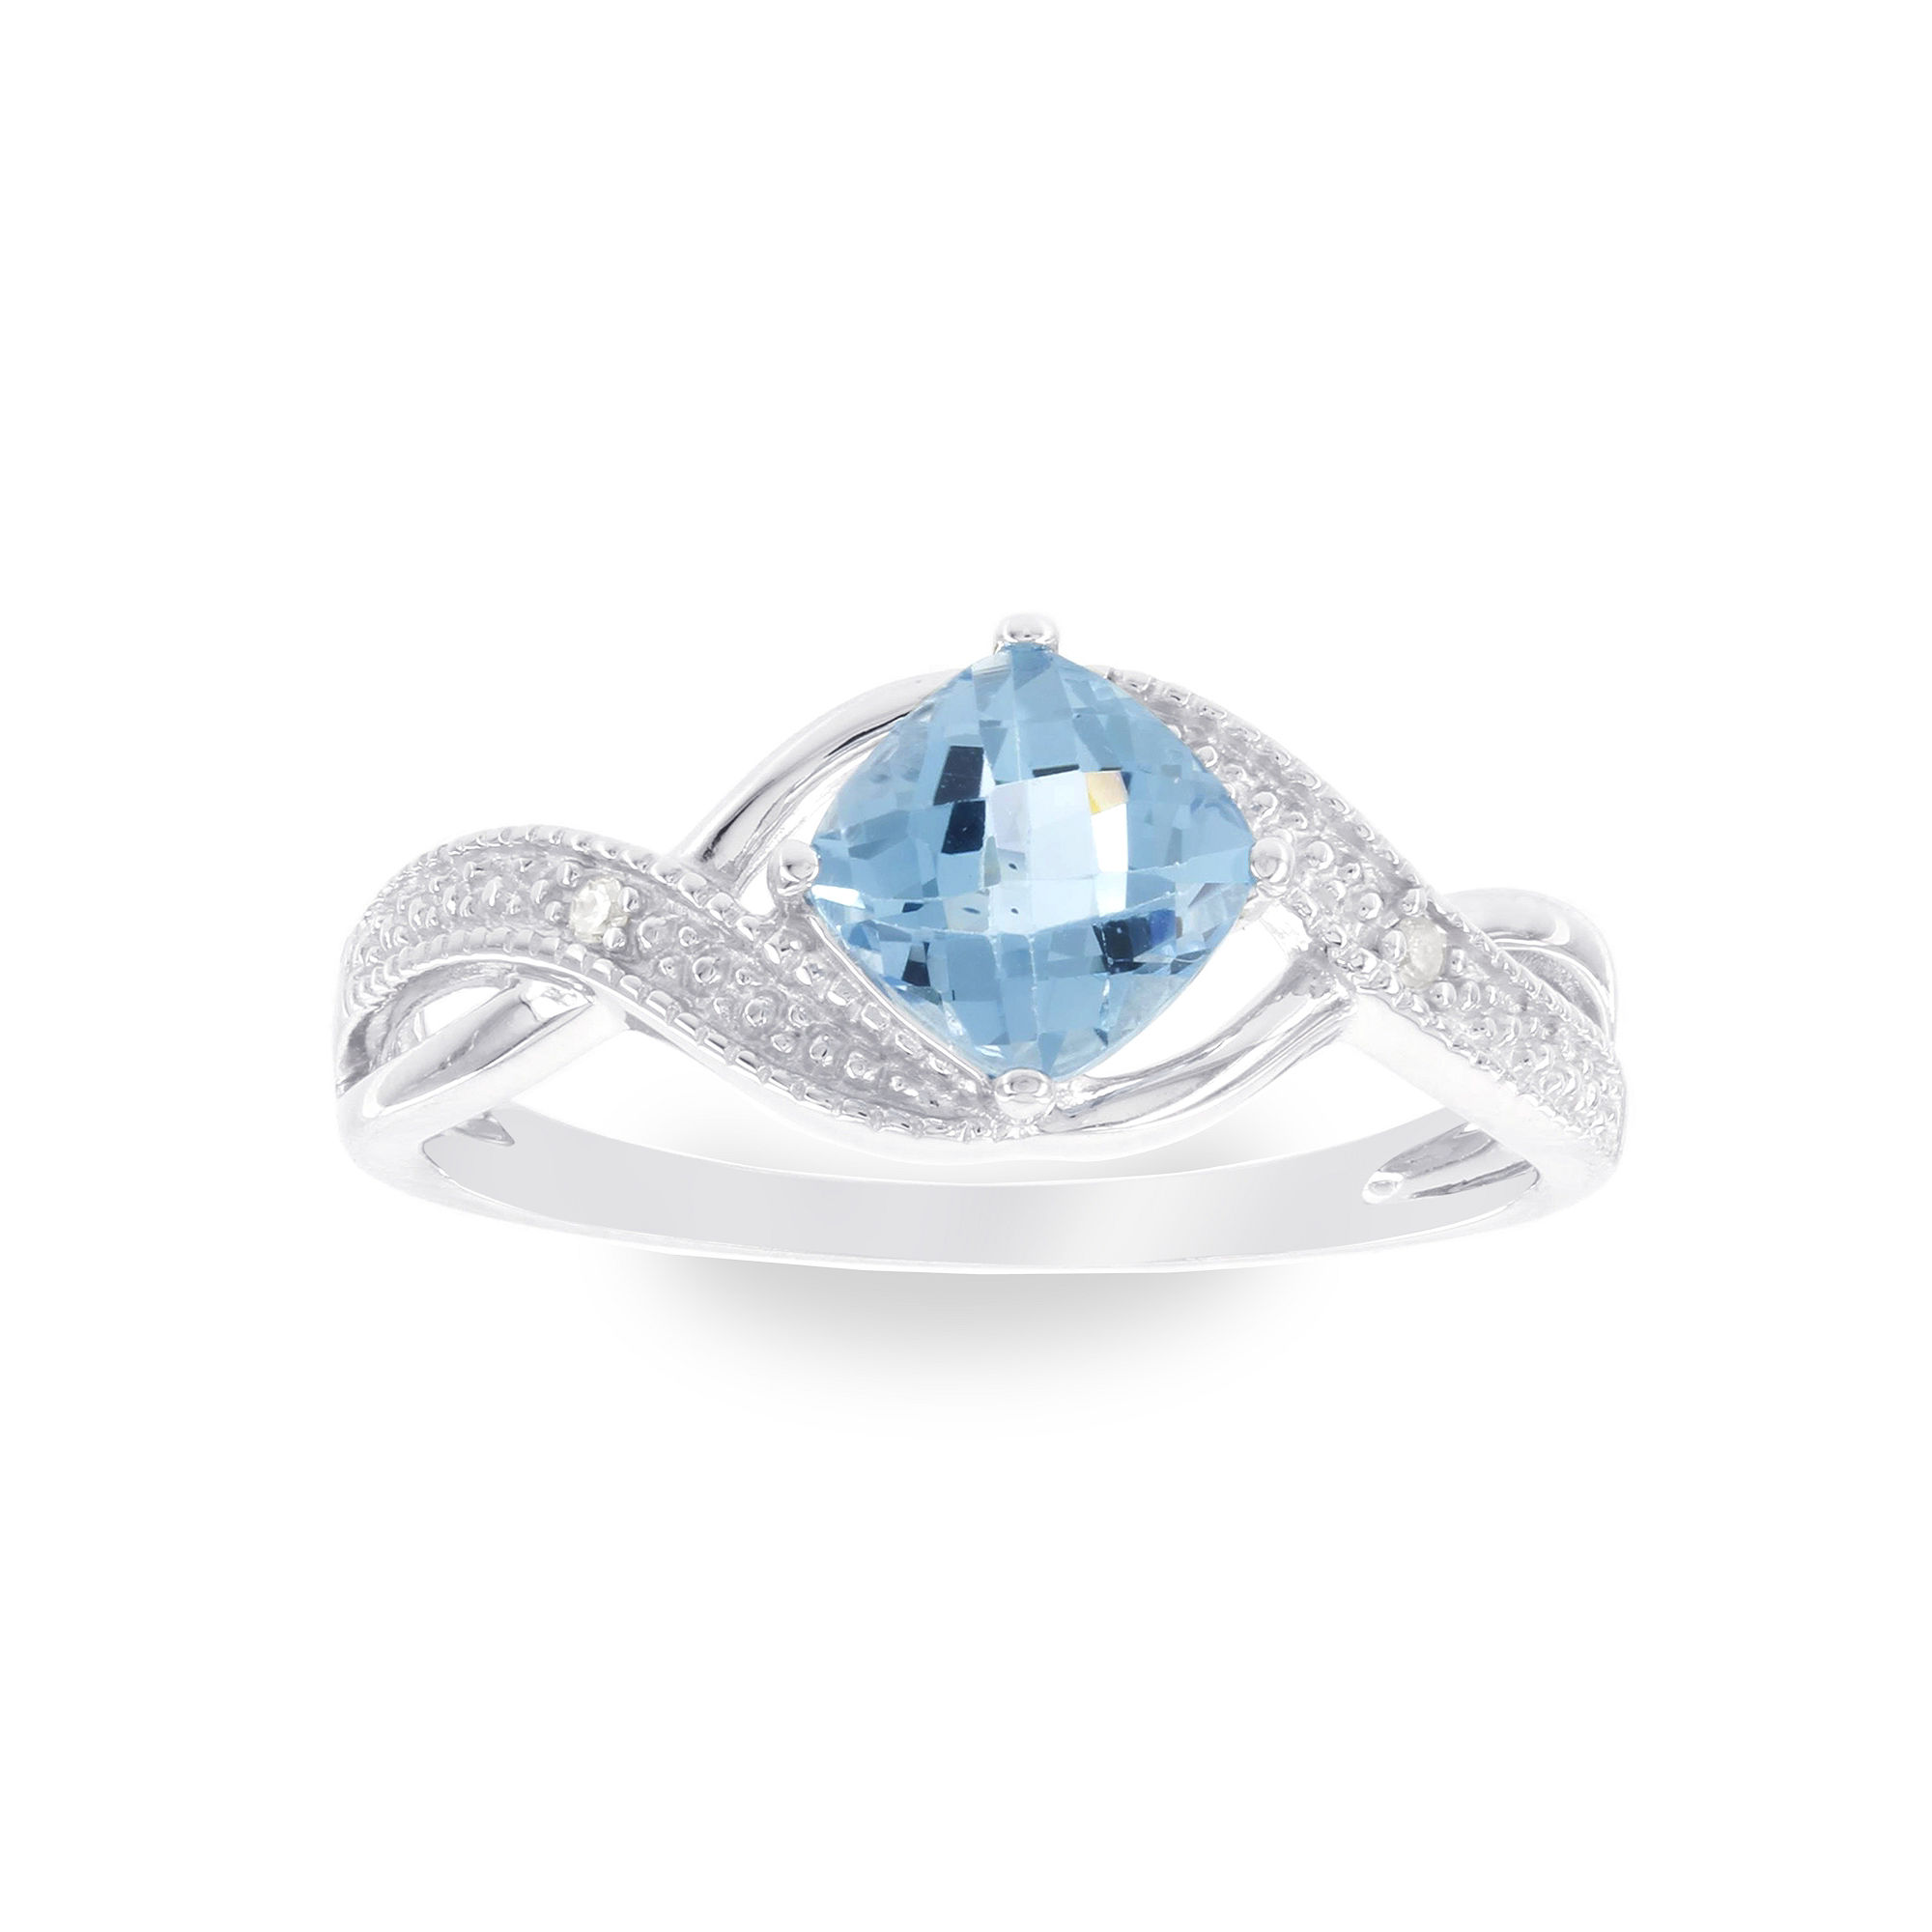 Diamond Accent Blue Topaz Cocktail Ring